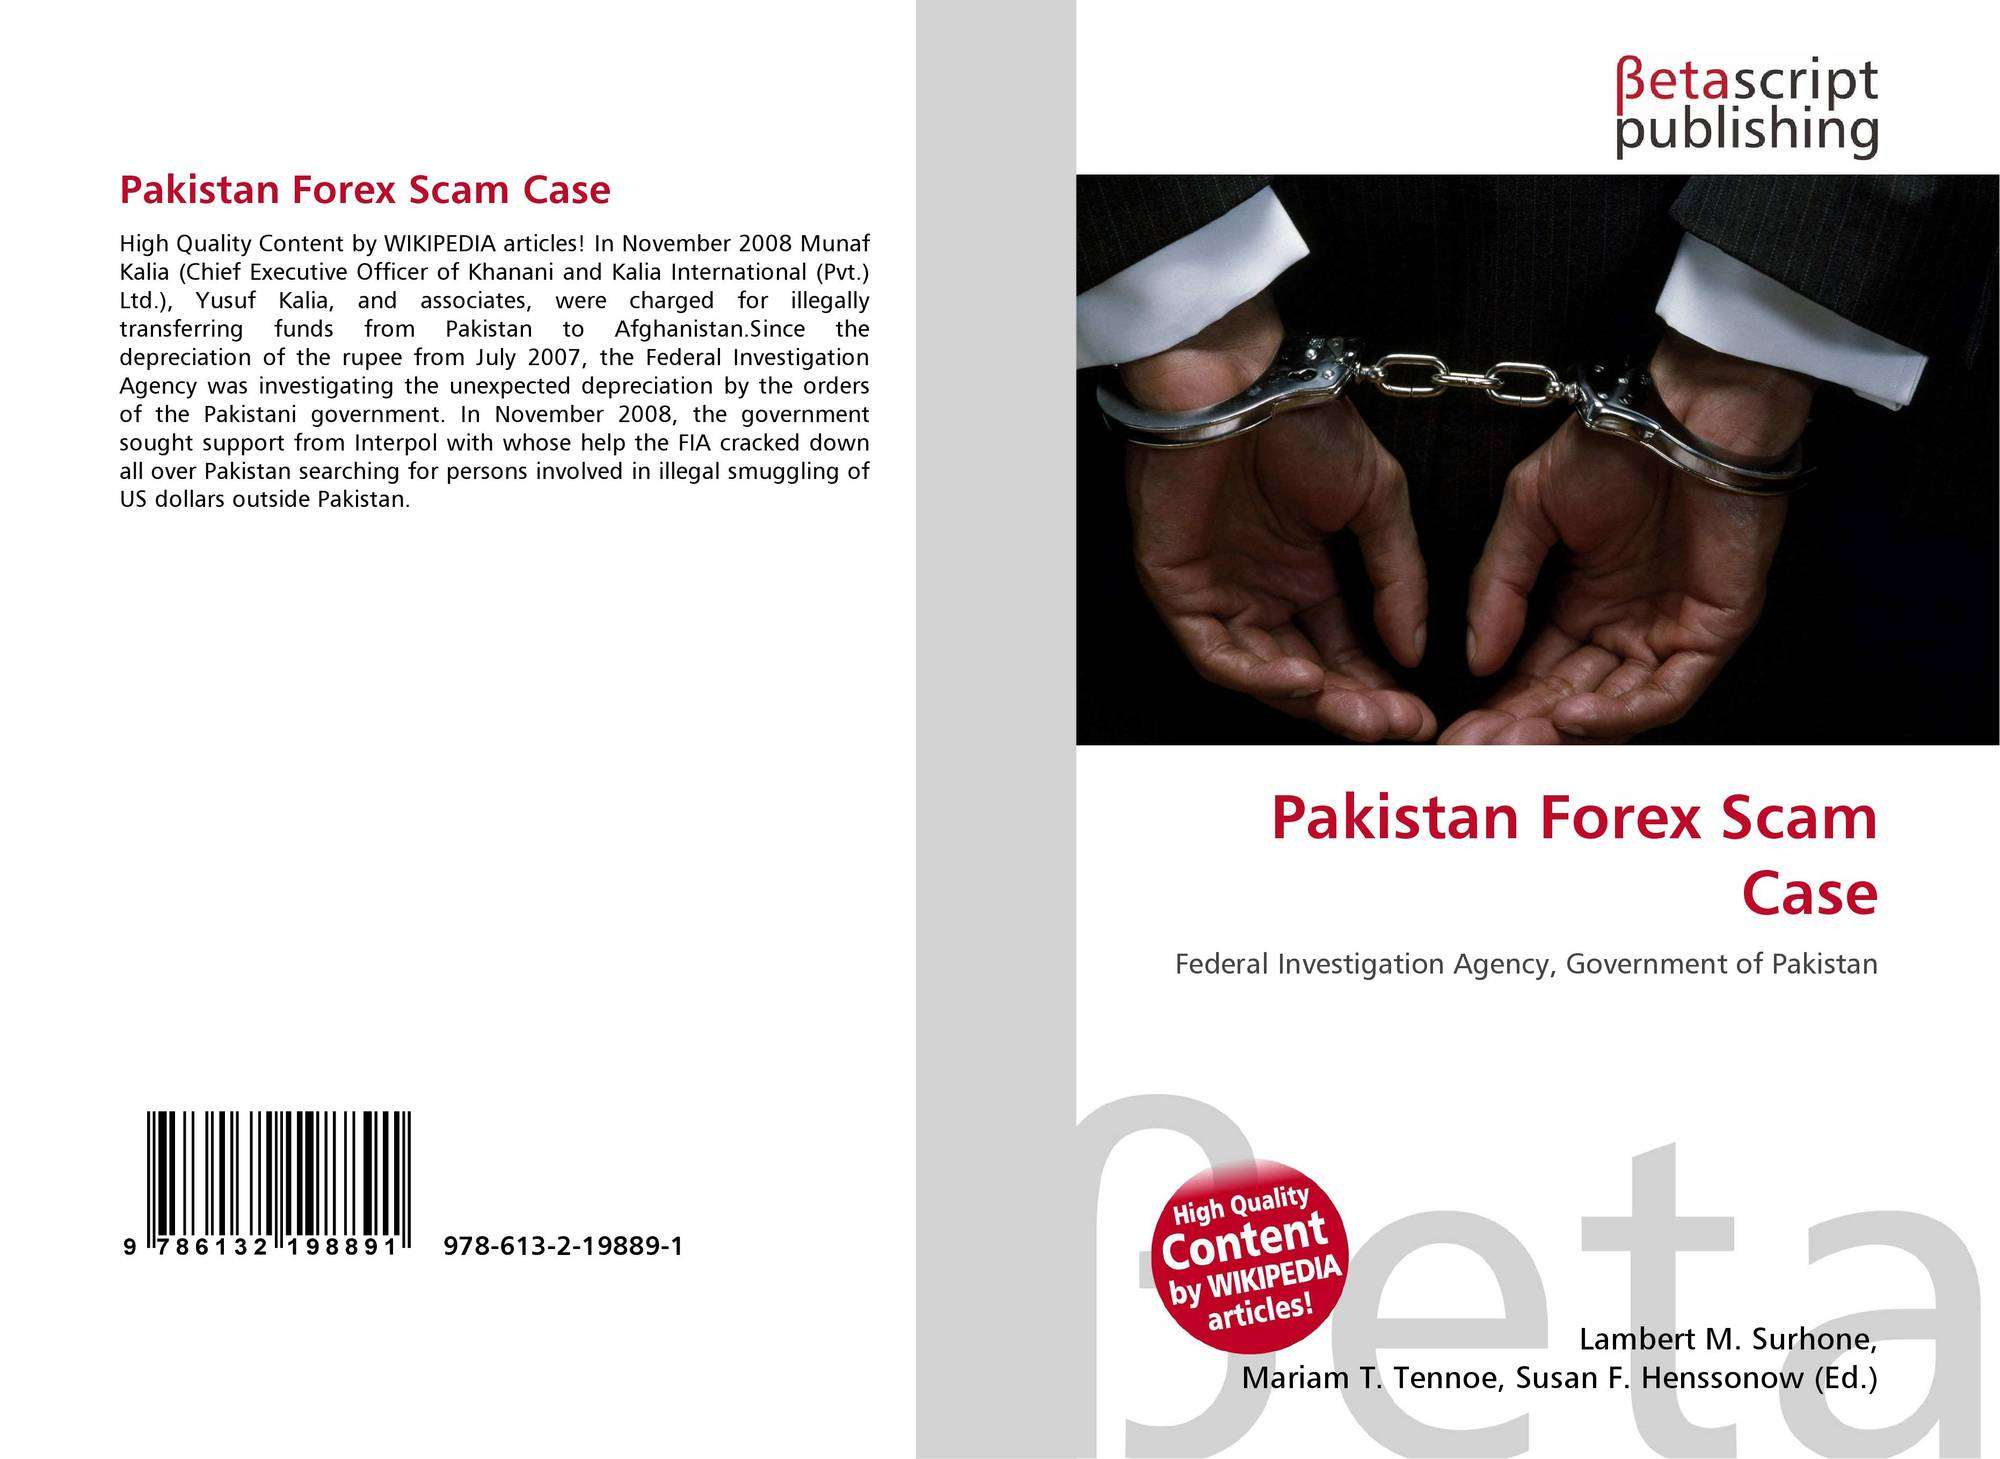 Pakistan forex scandal world investment opportunities funds prospectus of a company